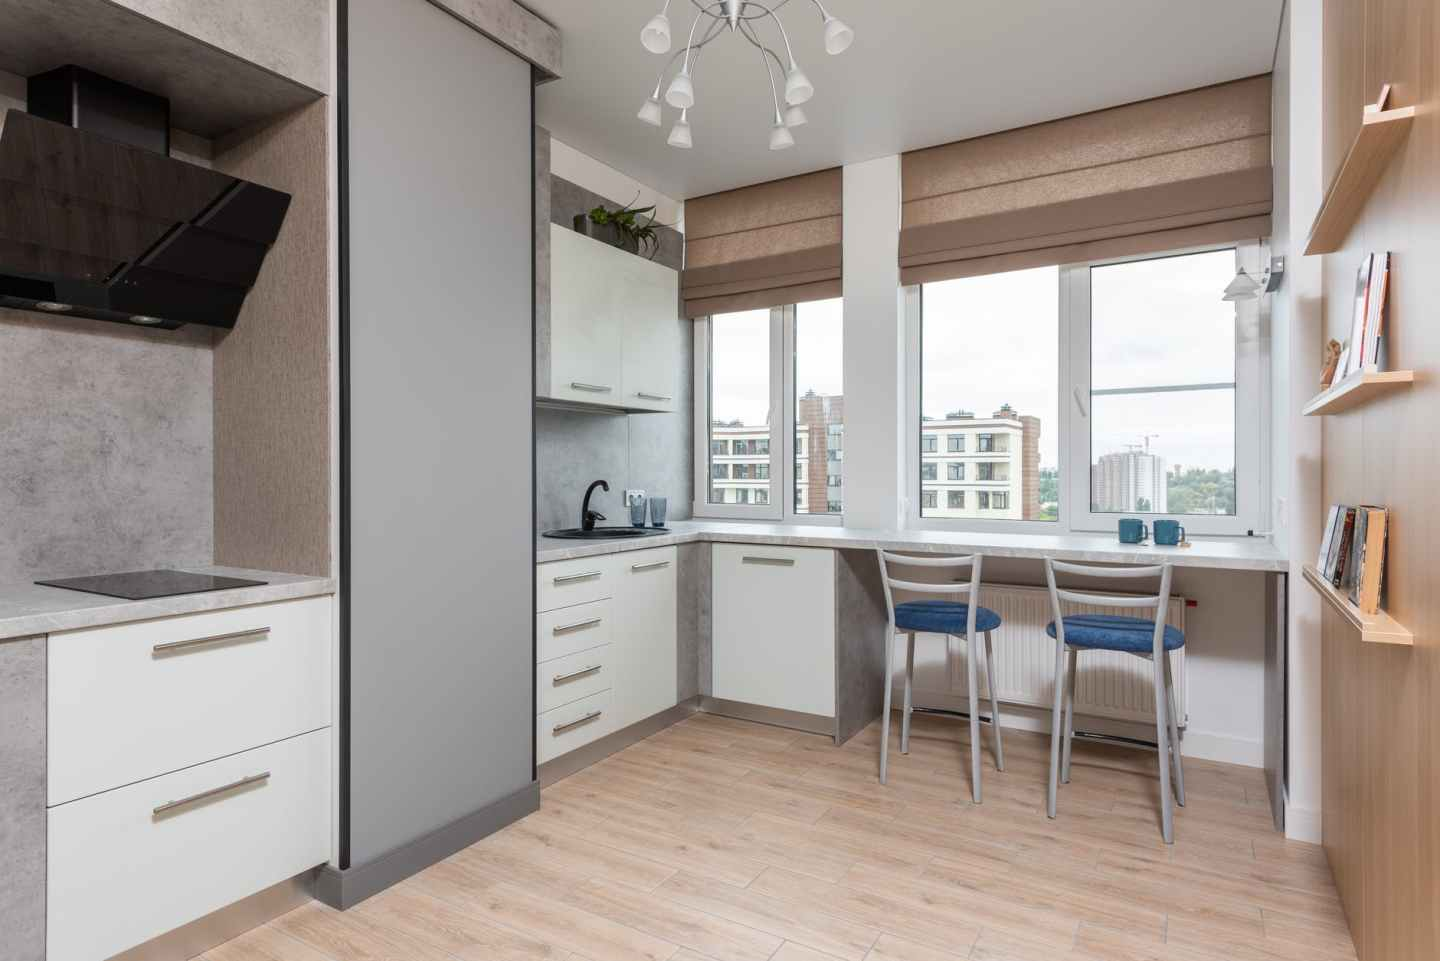 modern kitchen interior with cabinets and counter with chairs